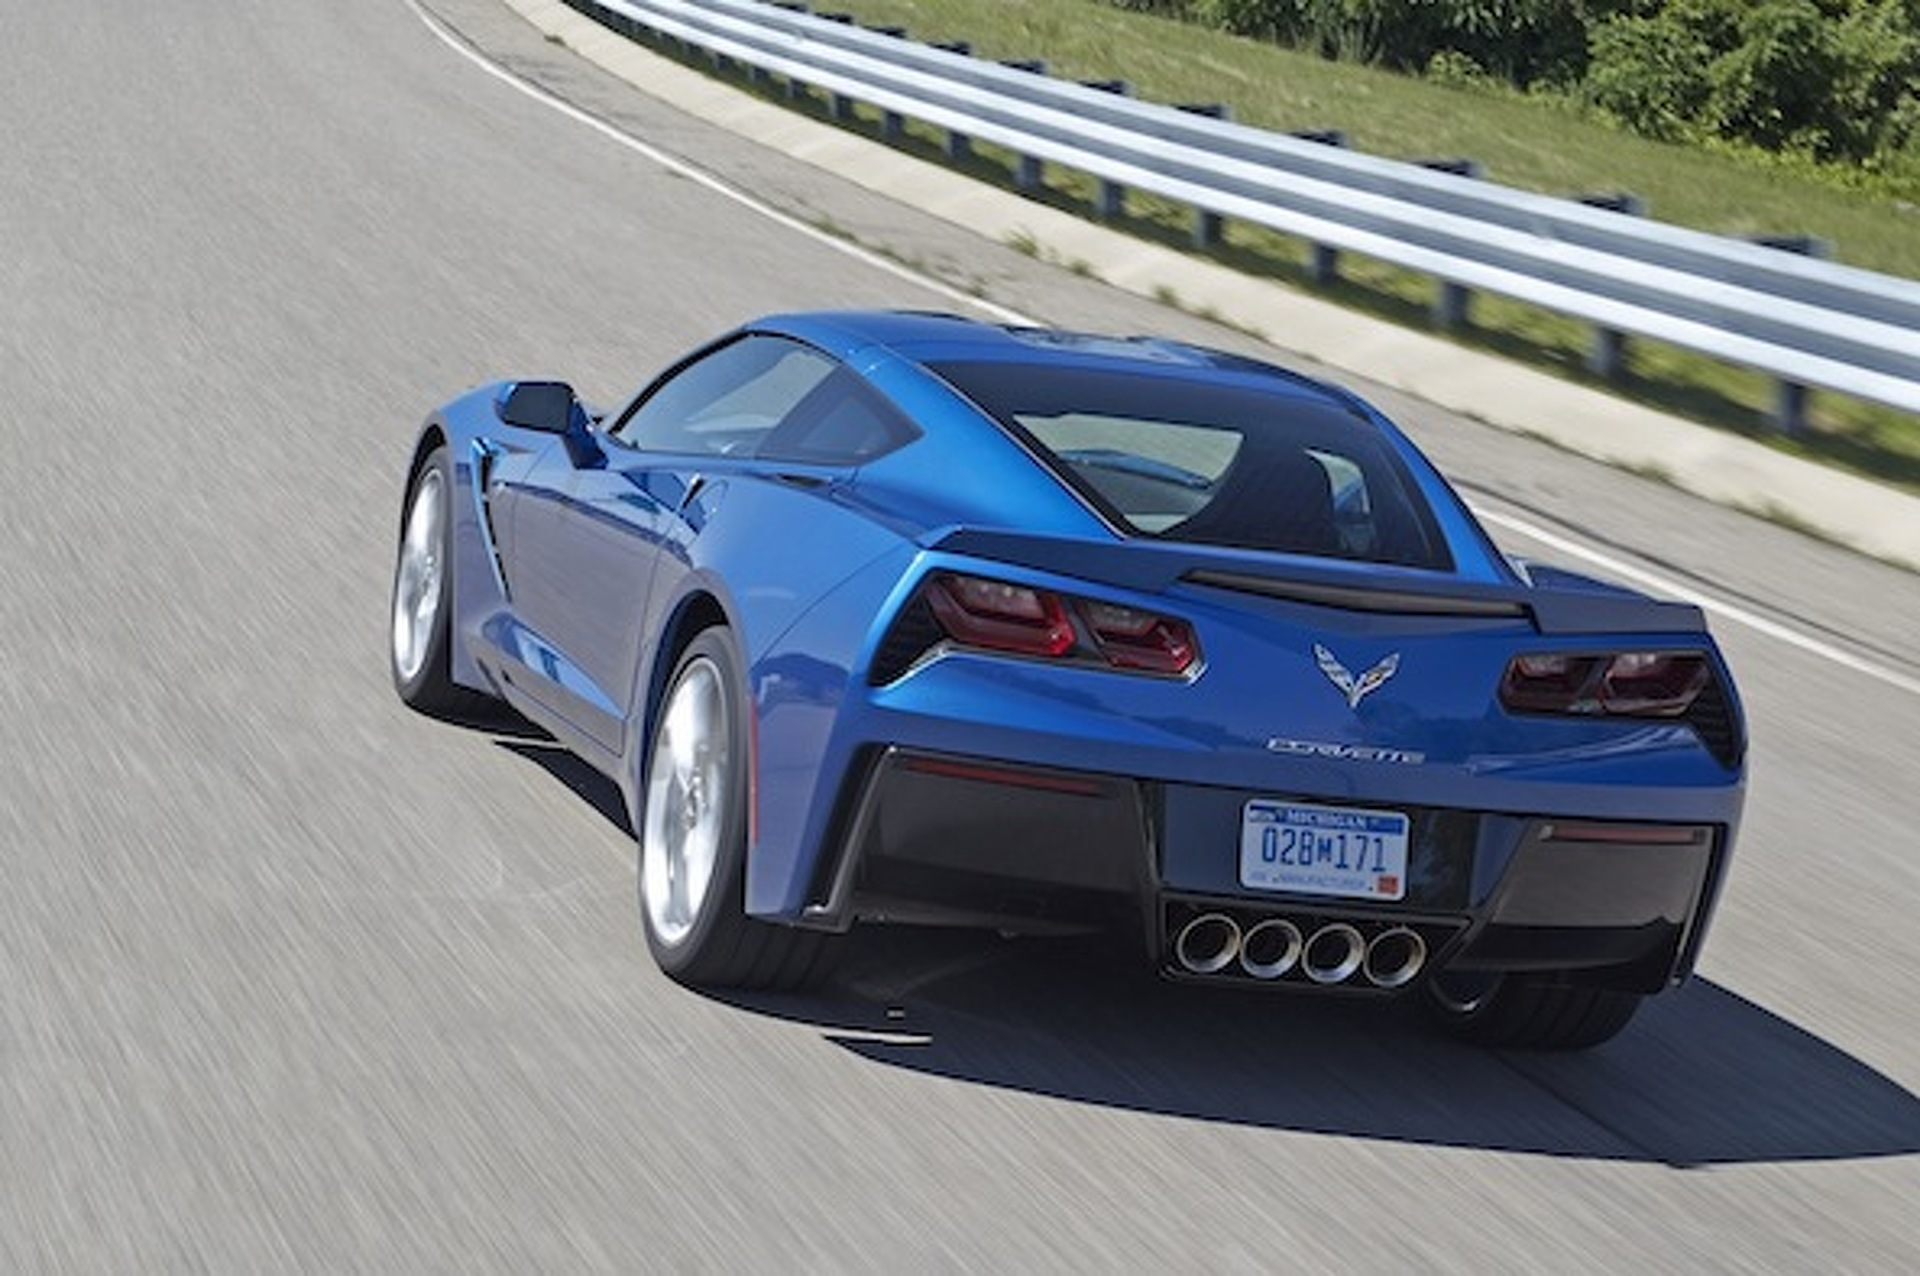 Corvette Stingray Z51 Does 0-60 MPH In Mere 3.8 Seconds